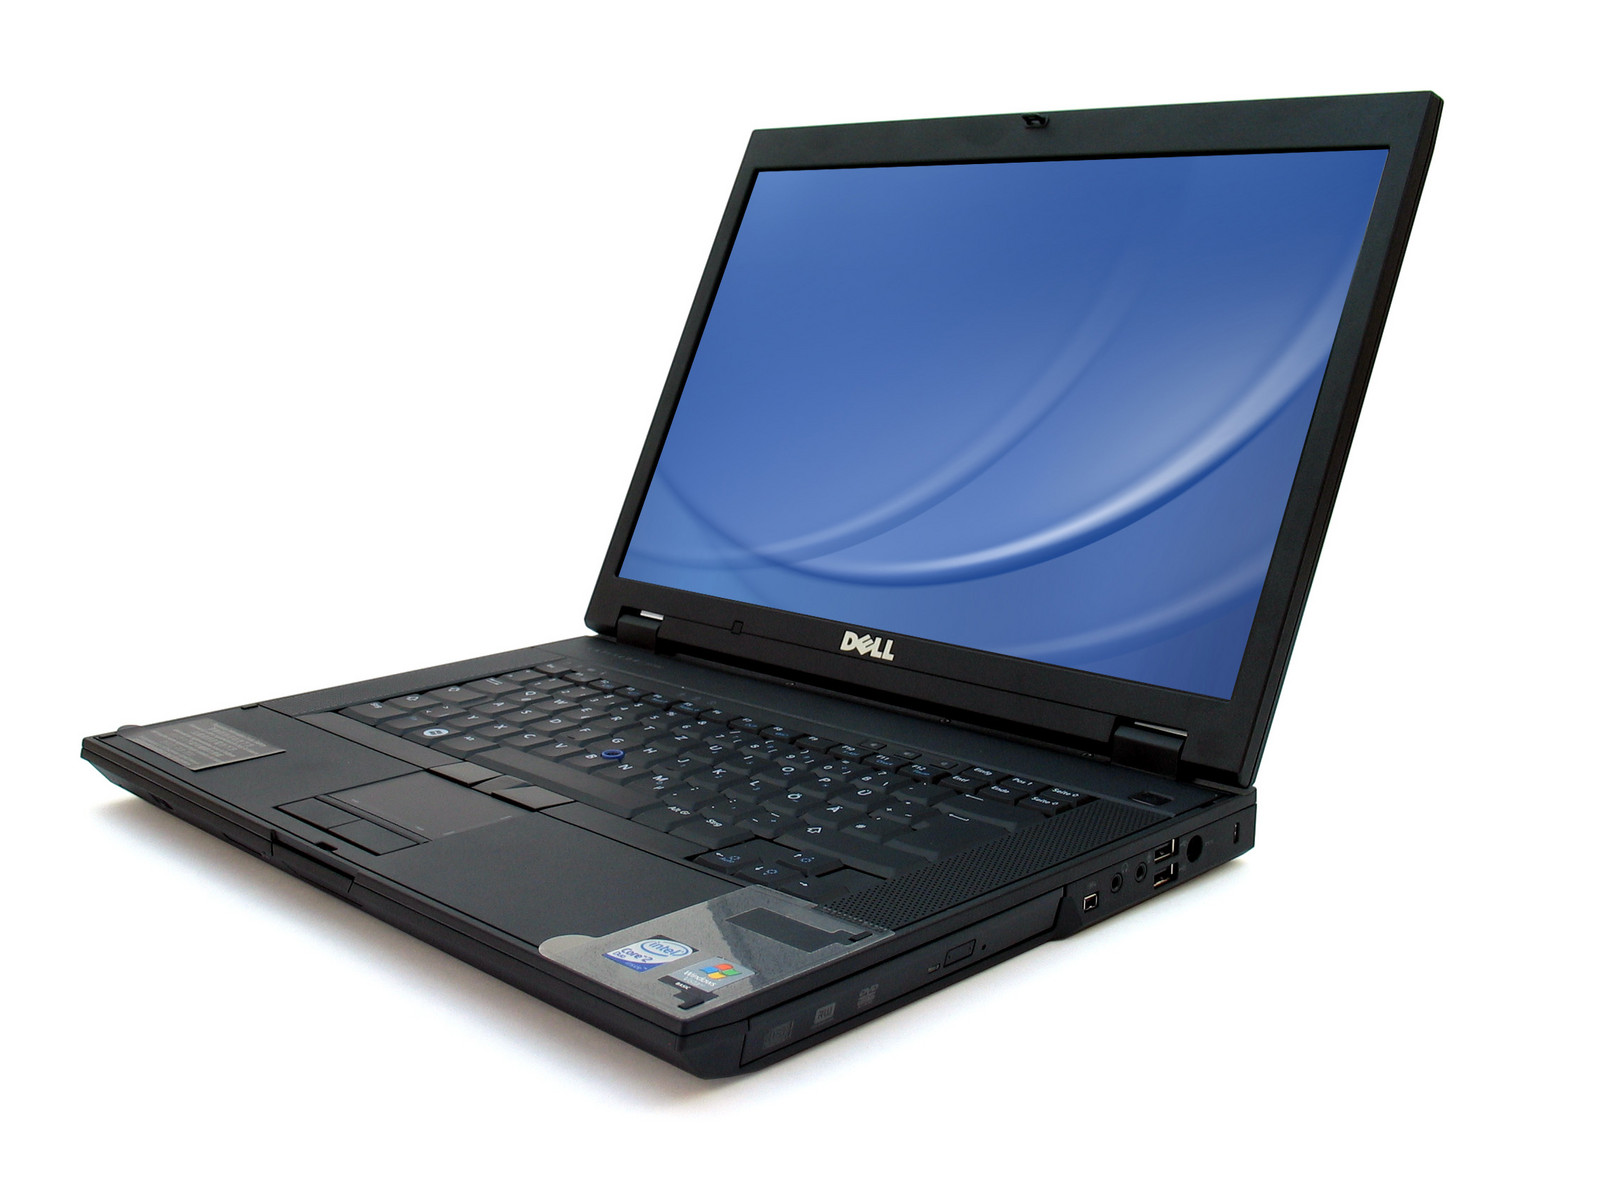 DELL INTEL MOBILE GMA X3100 INF VGA CHIPSET WINDOWS 7 64 DRIVER